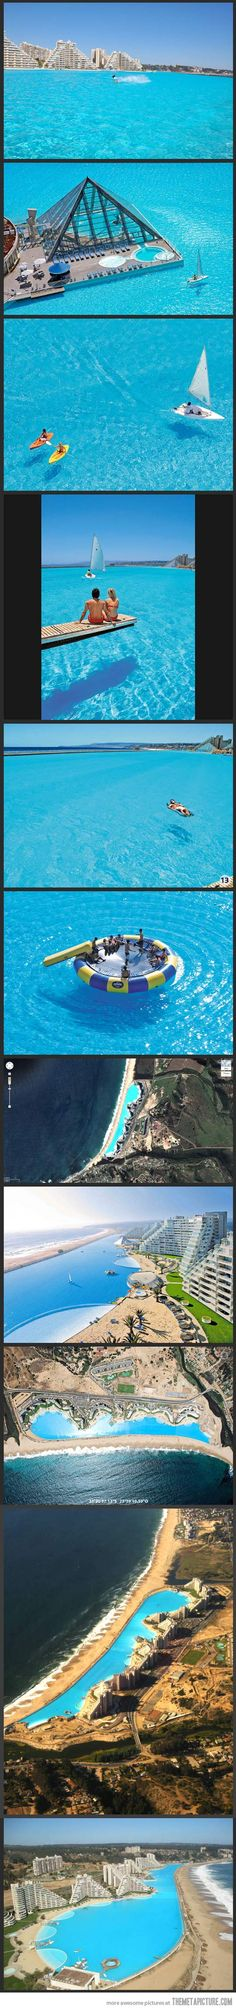 The Largest Swimming Pool in the World in Chile